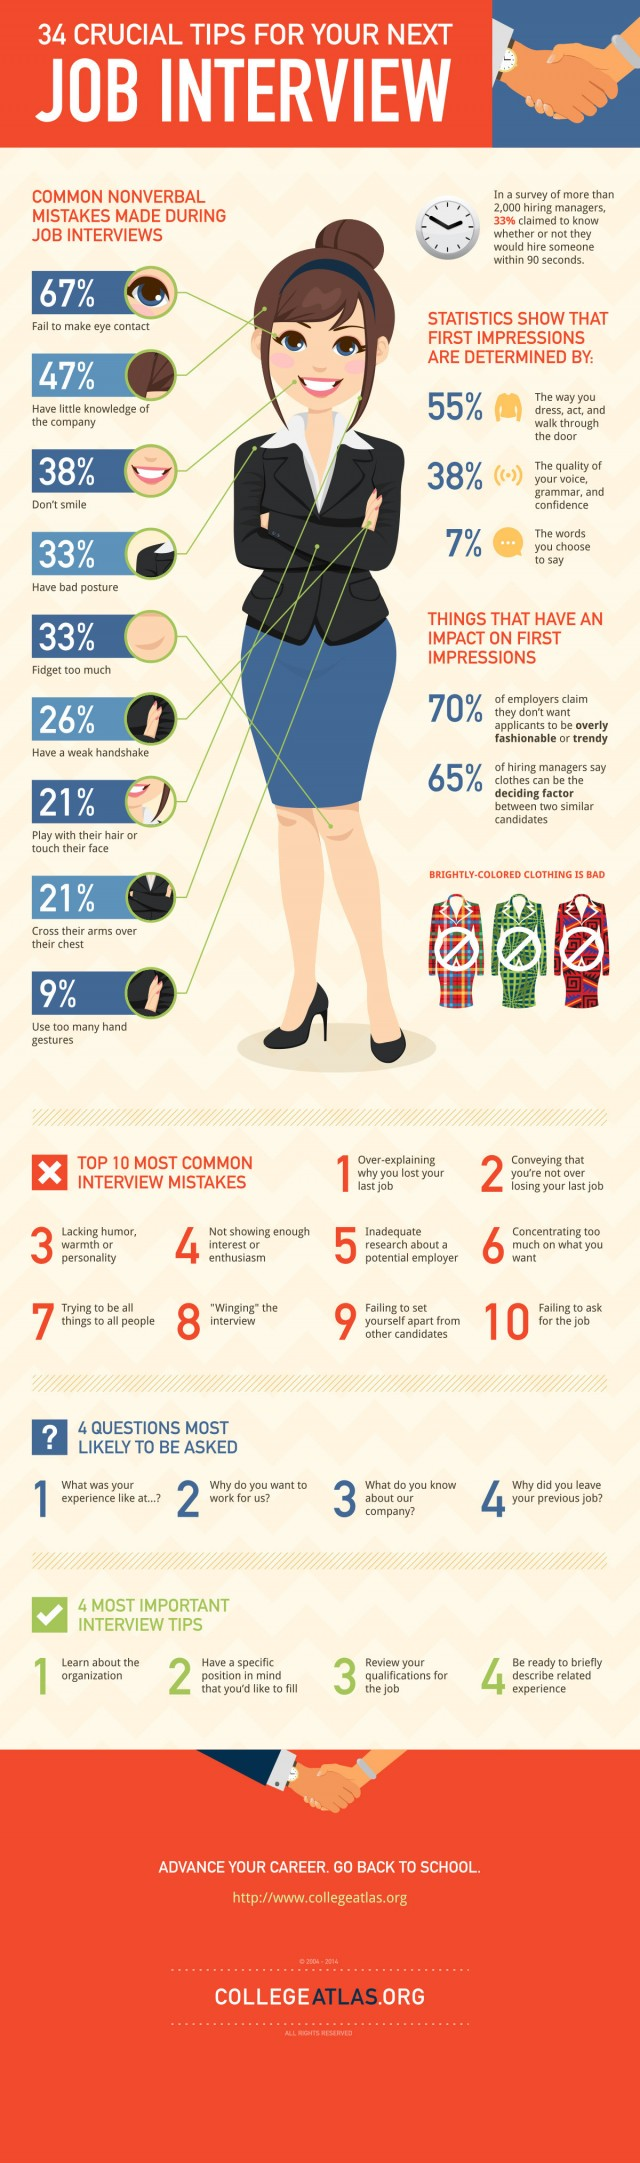 infographic tips on how to succeed in job interviews infographic tips on how to succeed in job interviews